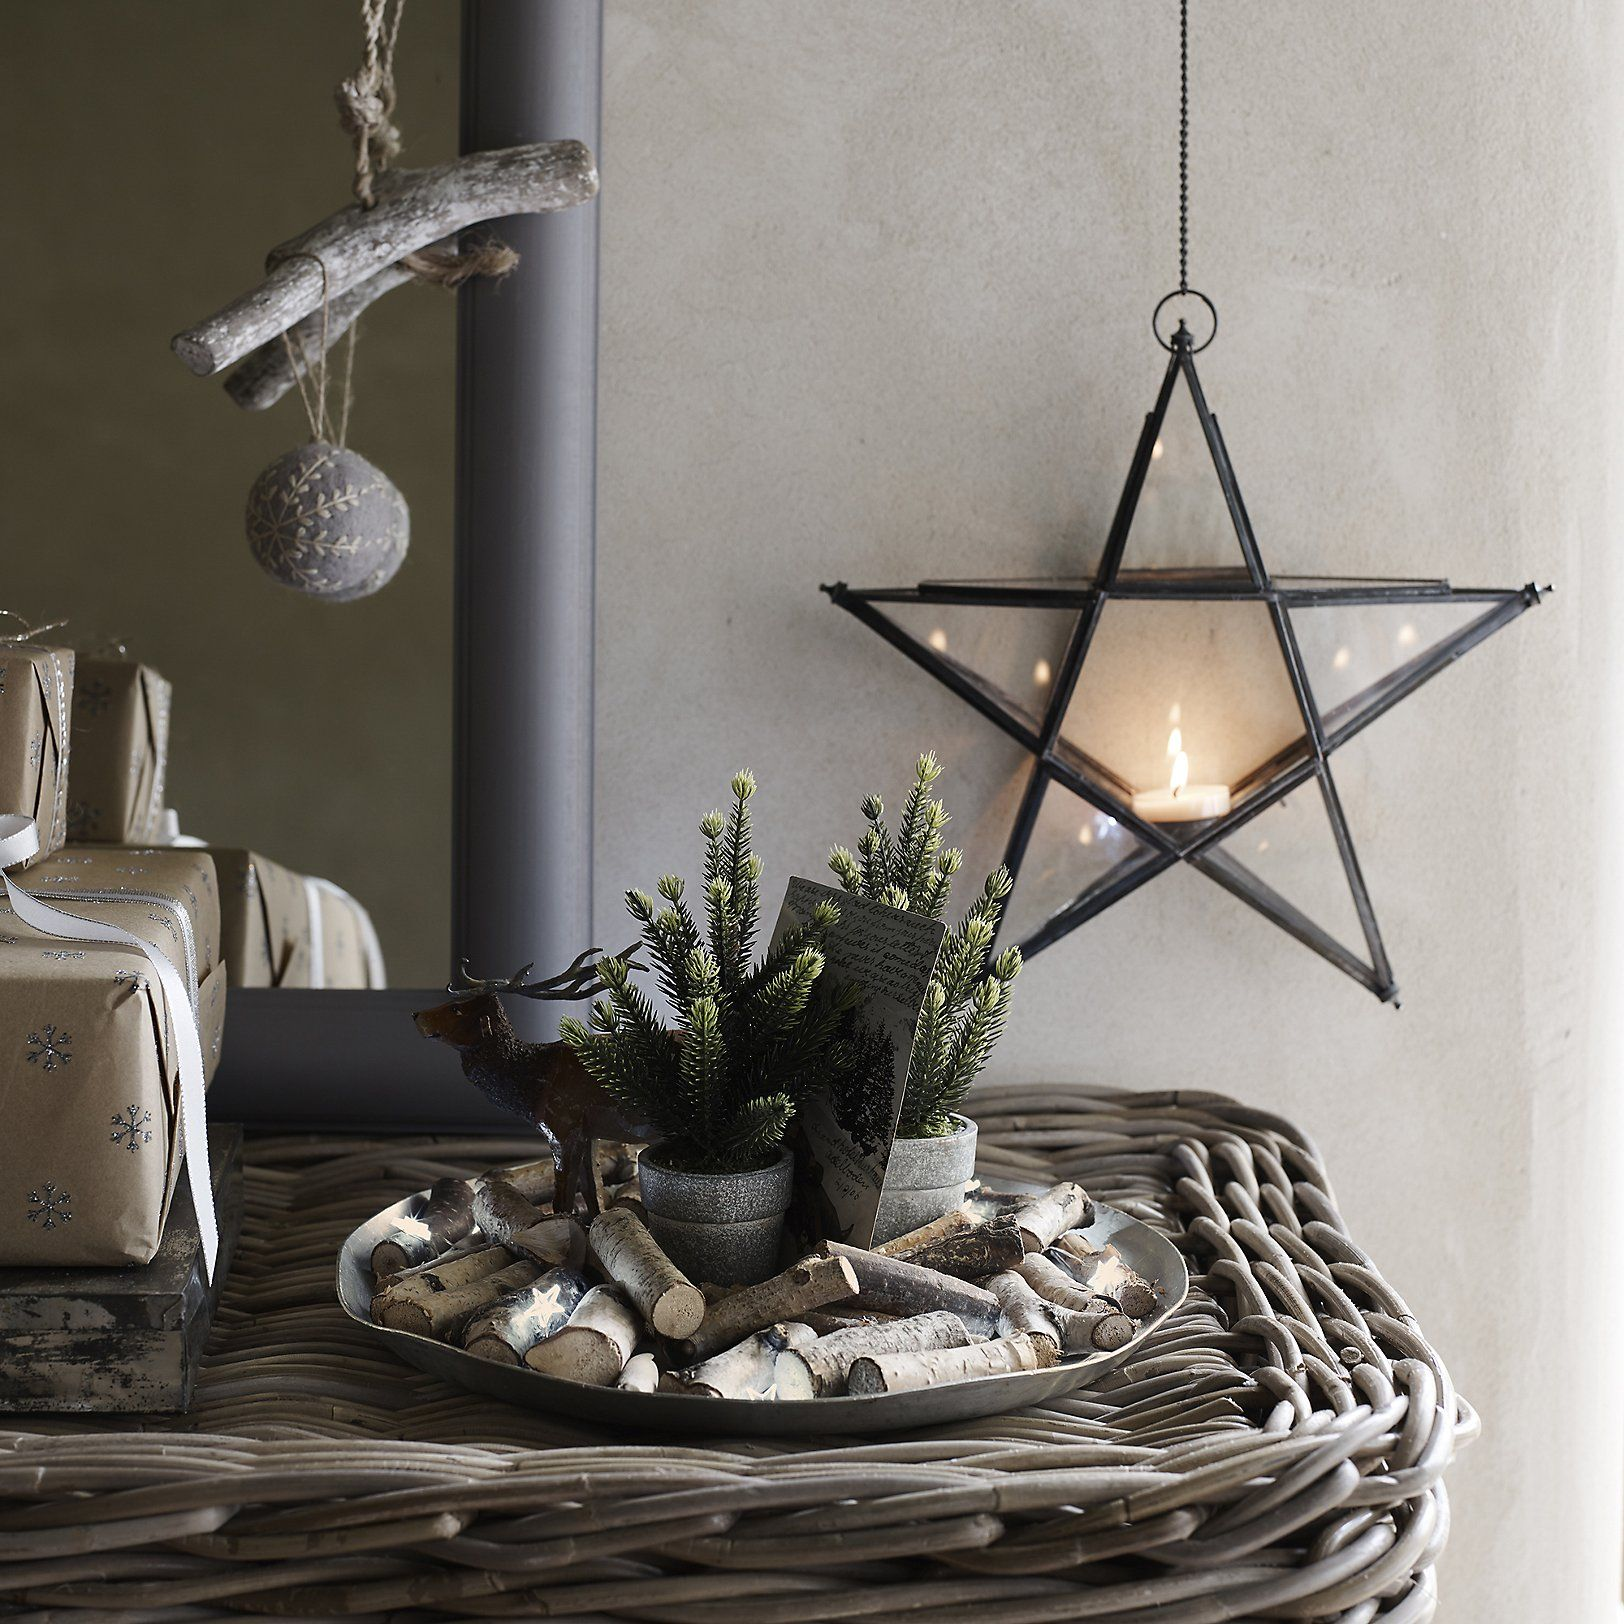 Rustic Christmas Decorations Hanging Star Tealight Christmas Room Decorations Christmas